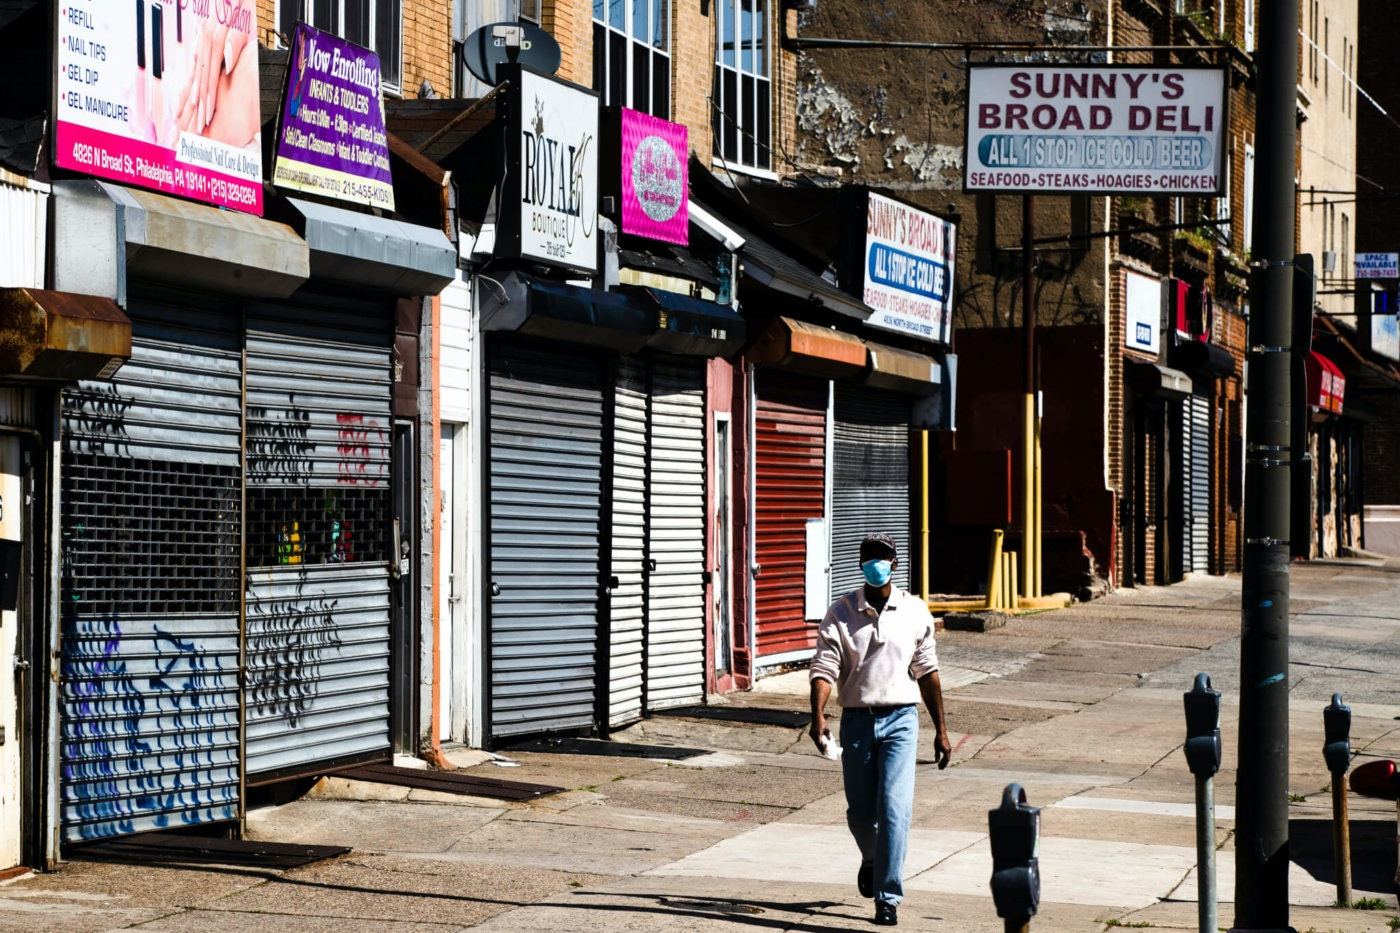 A person wearing a protective face mask as a precaution against the coronavirus walks past shuttered businesses in Philadelphia. (AP Photo/Matt Rourke)